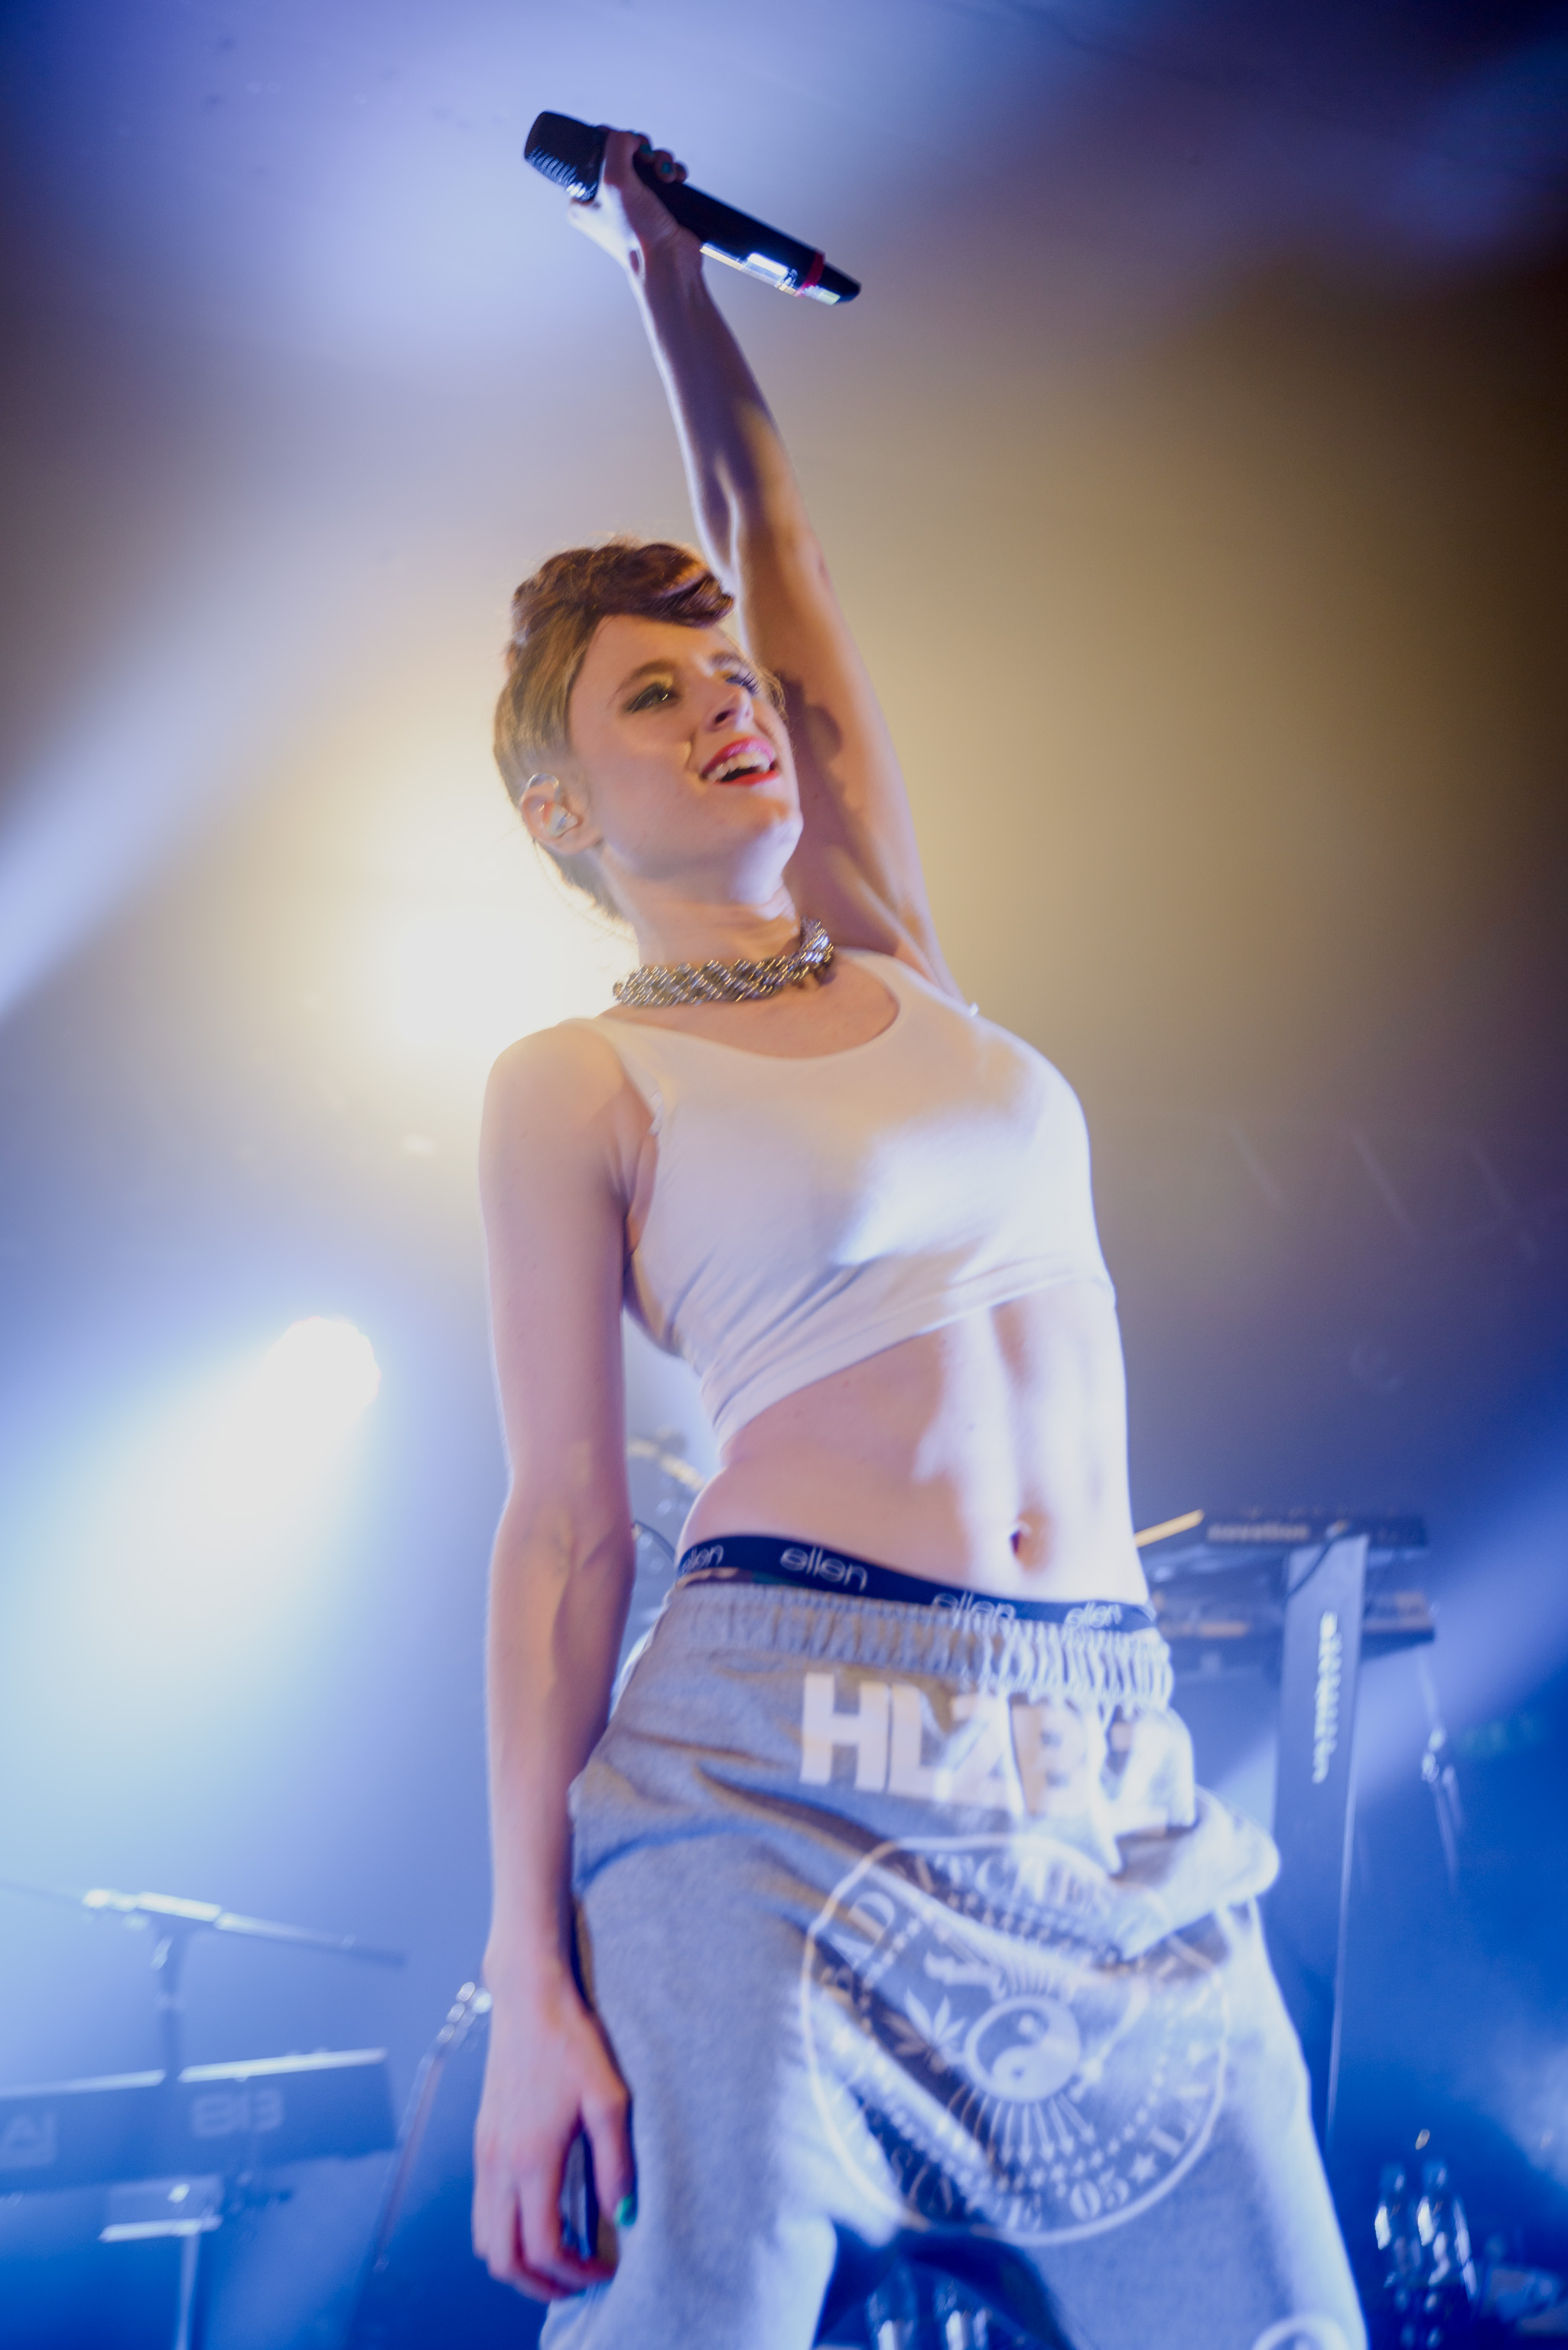 The 29-year old daughter of father (?) and mother(?) Kiesza in 2018 photo. Kiesza earned a  million dollar salary - leaving the net worth at 1 million in 2018